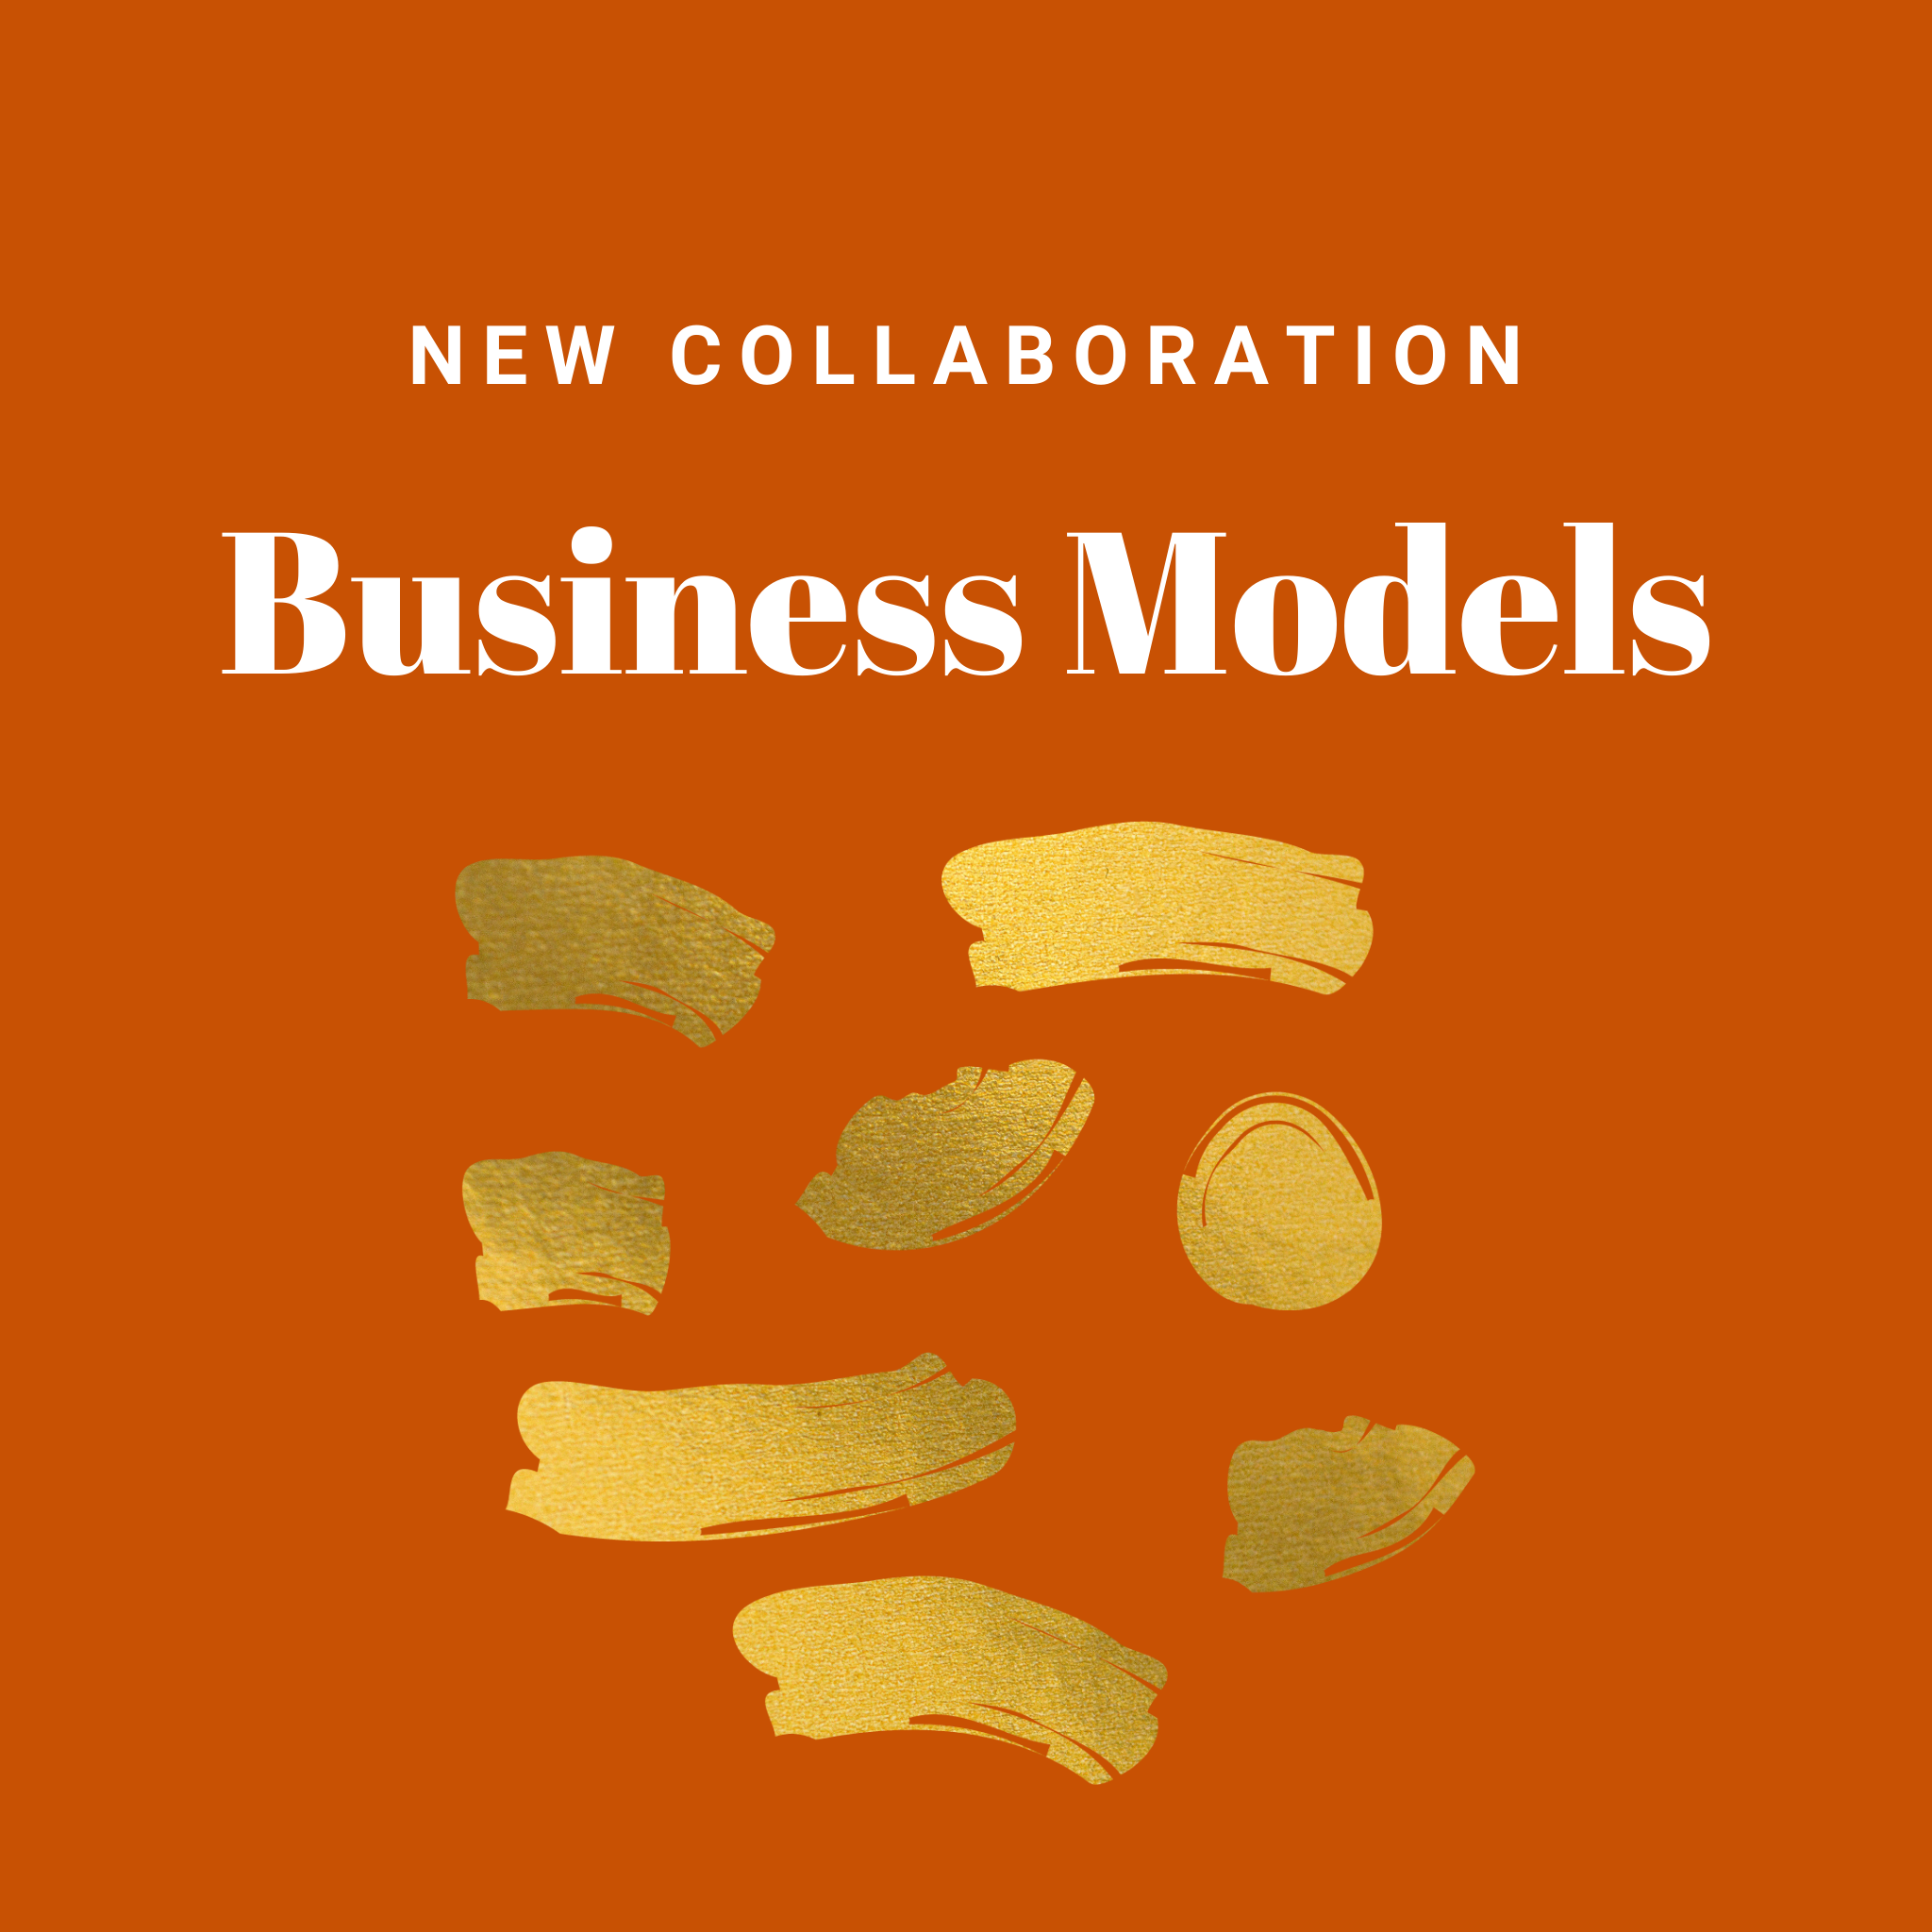 New Collaboration Business Models